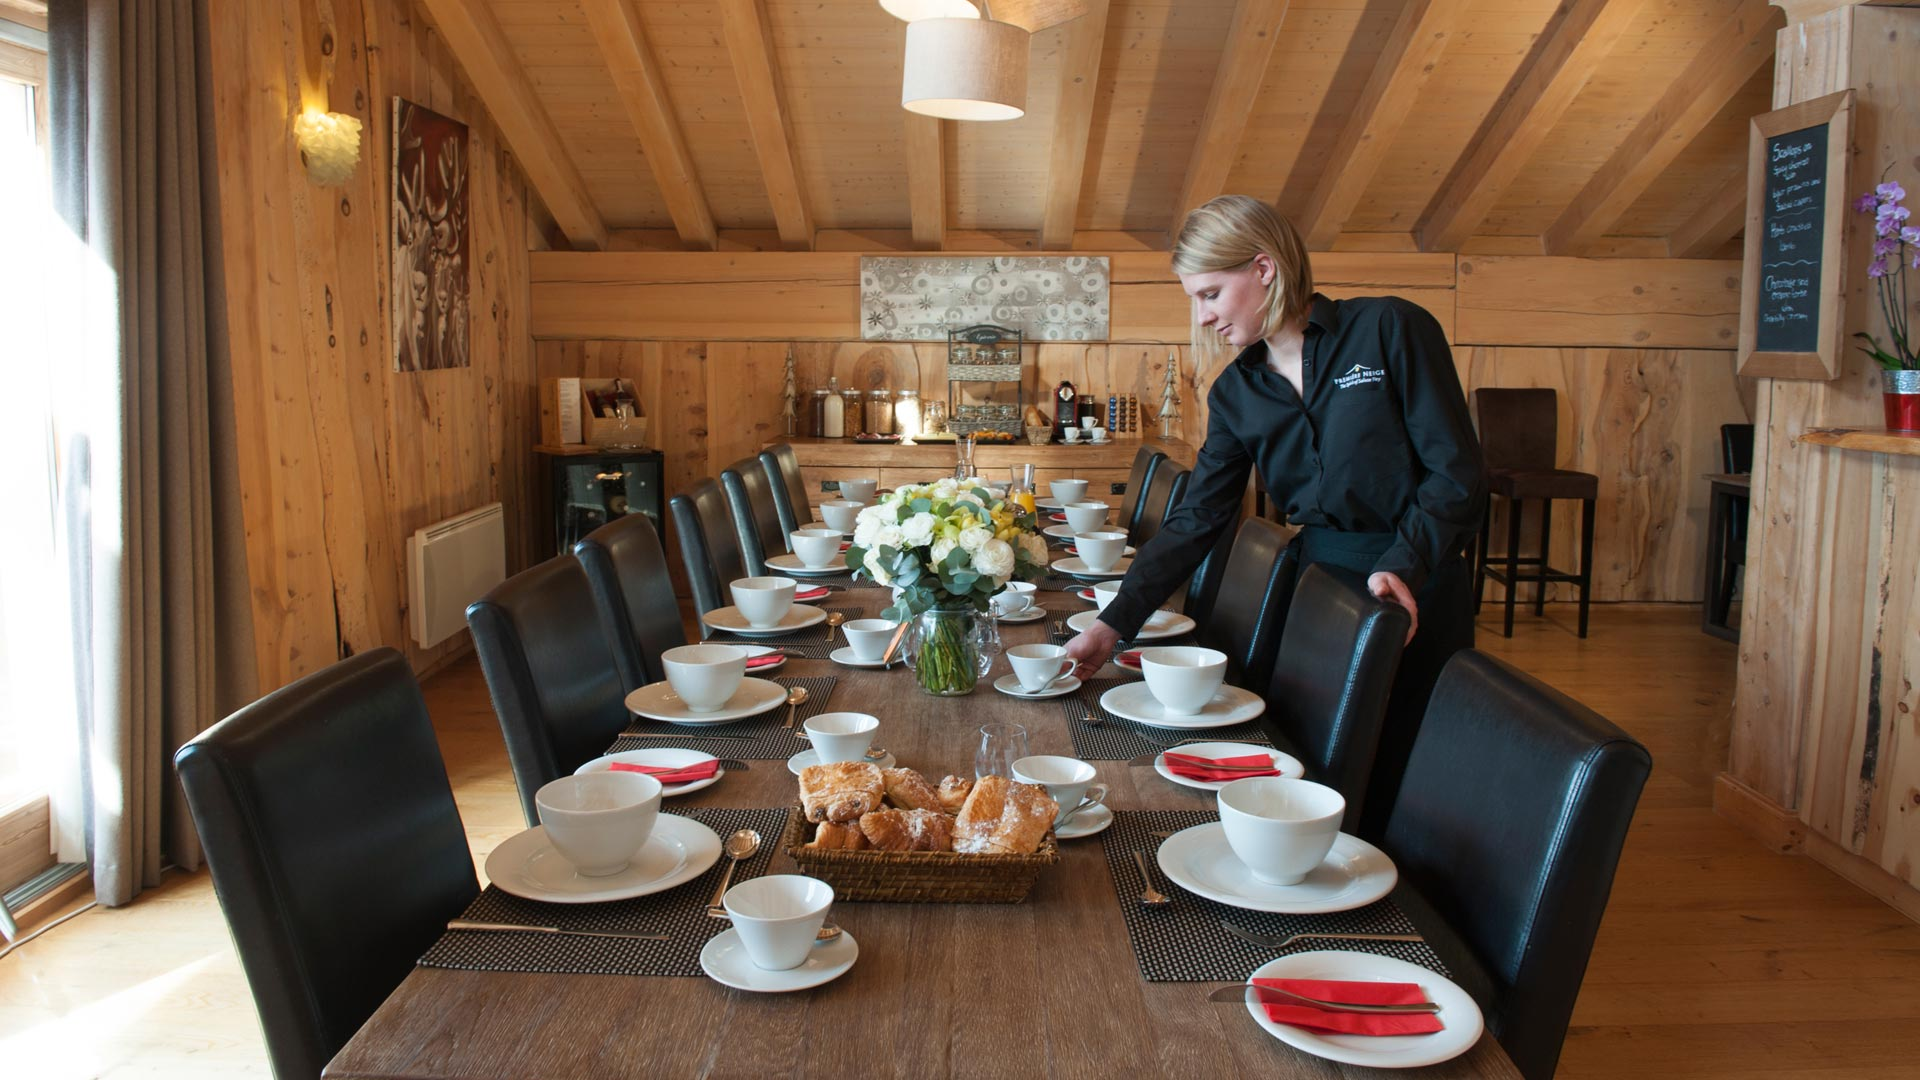 Dining Area in The Peak Chalet in Ste Foy